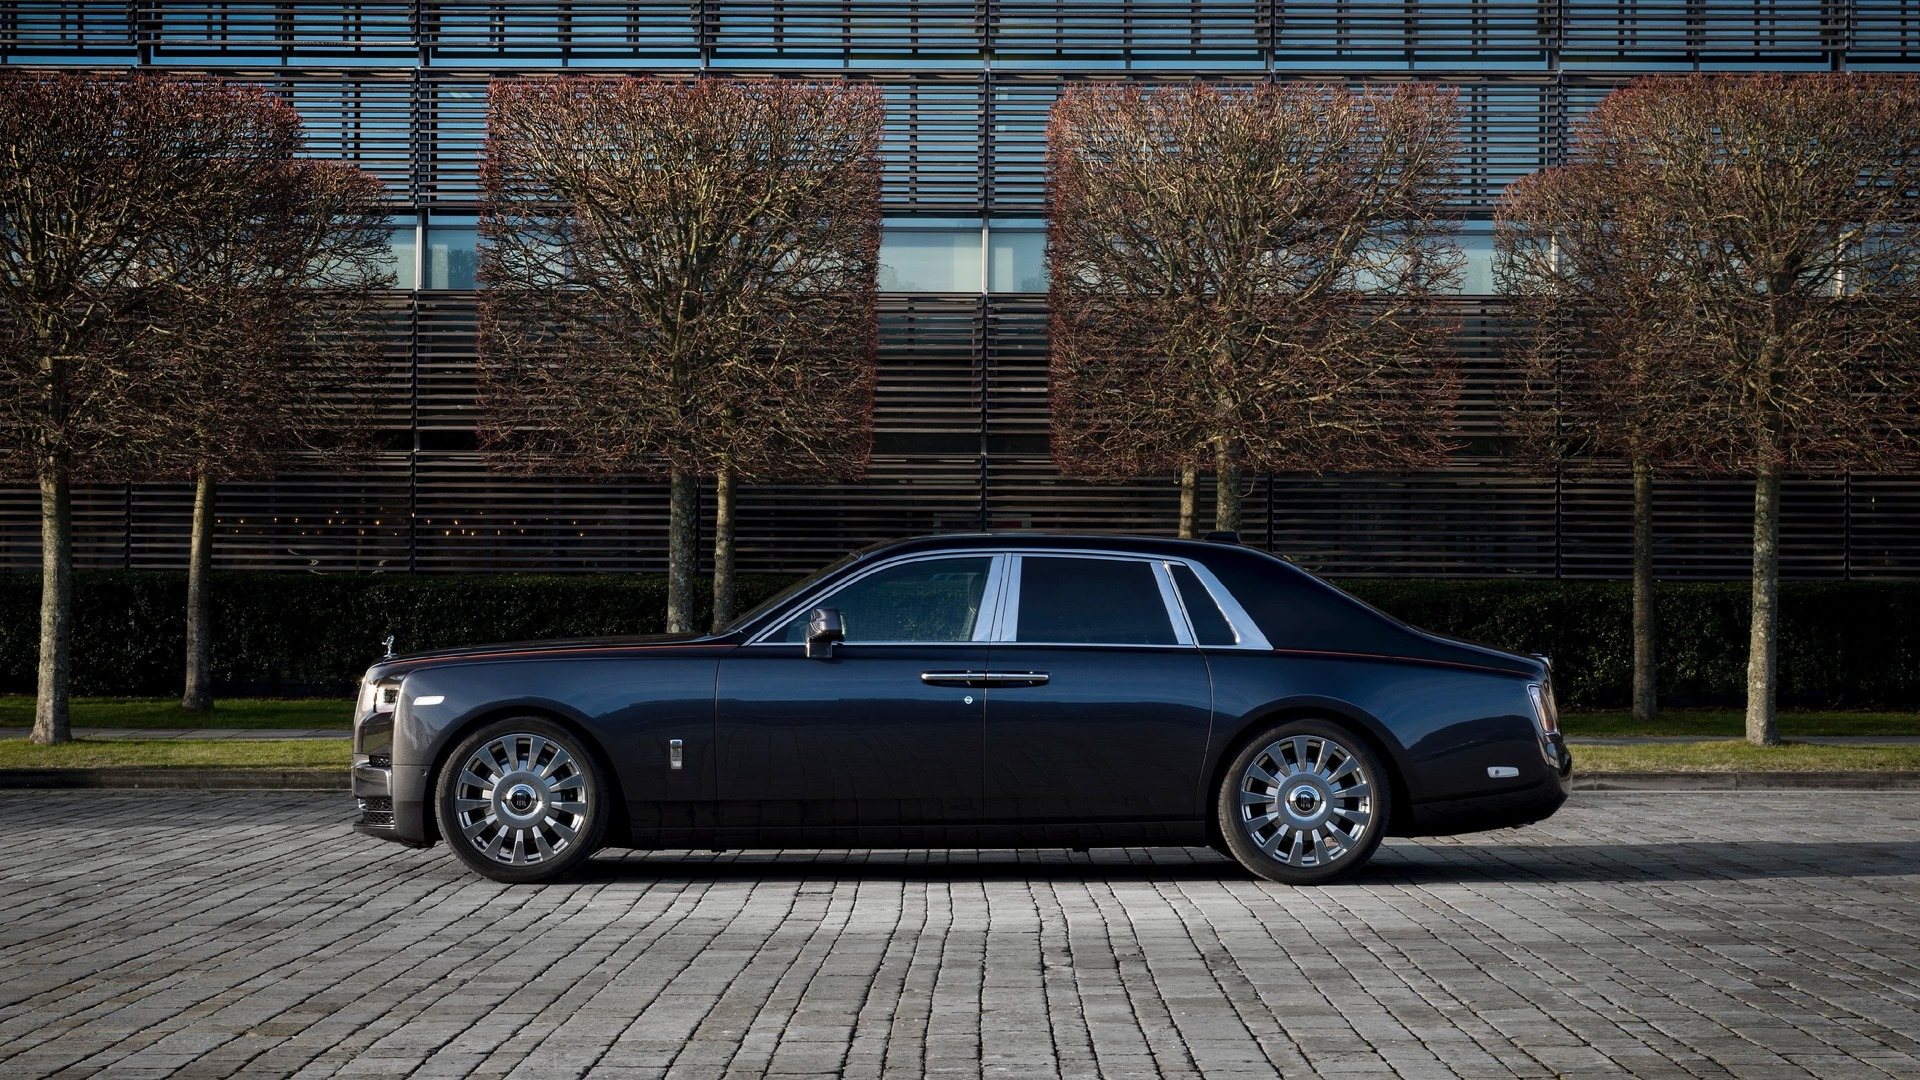 Side view of gunmetal Rolls-Royce Phantom standard wheelbase